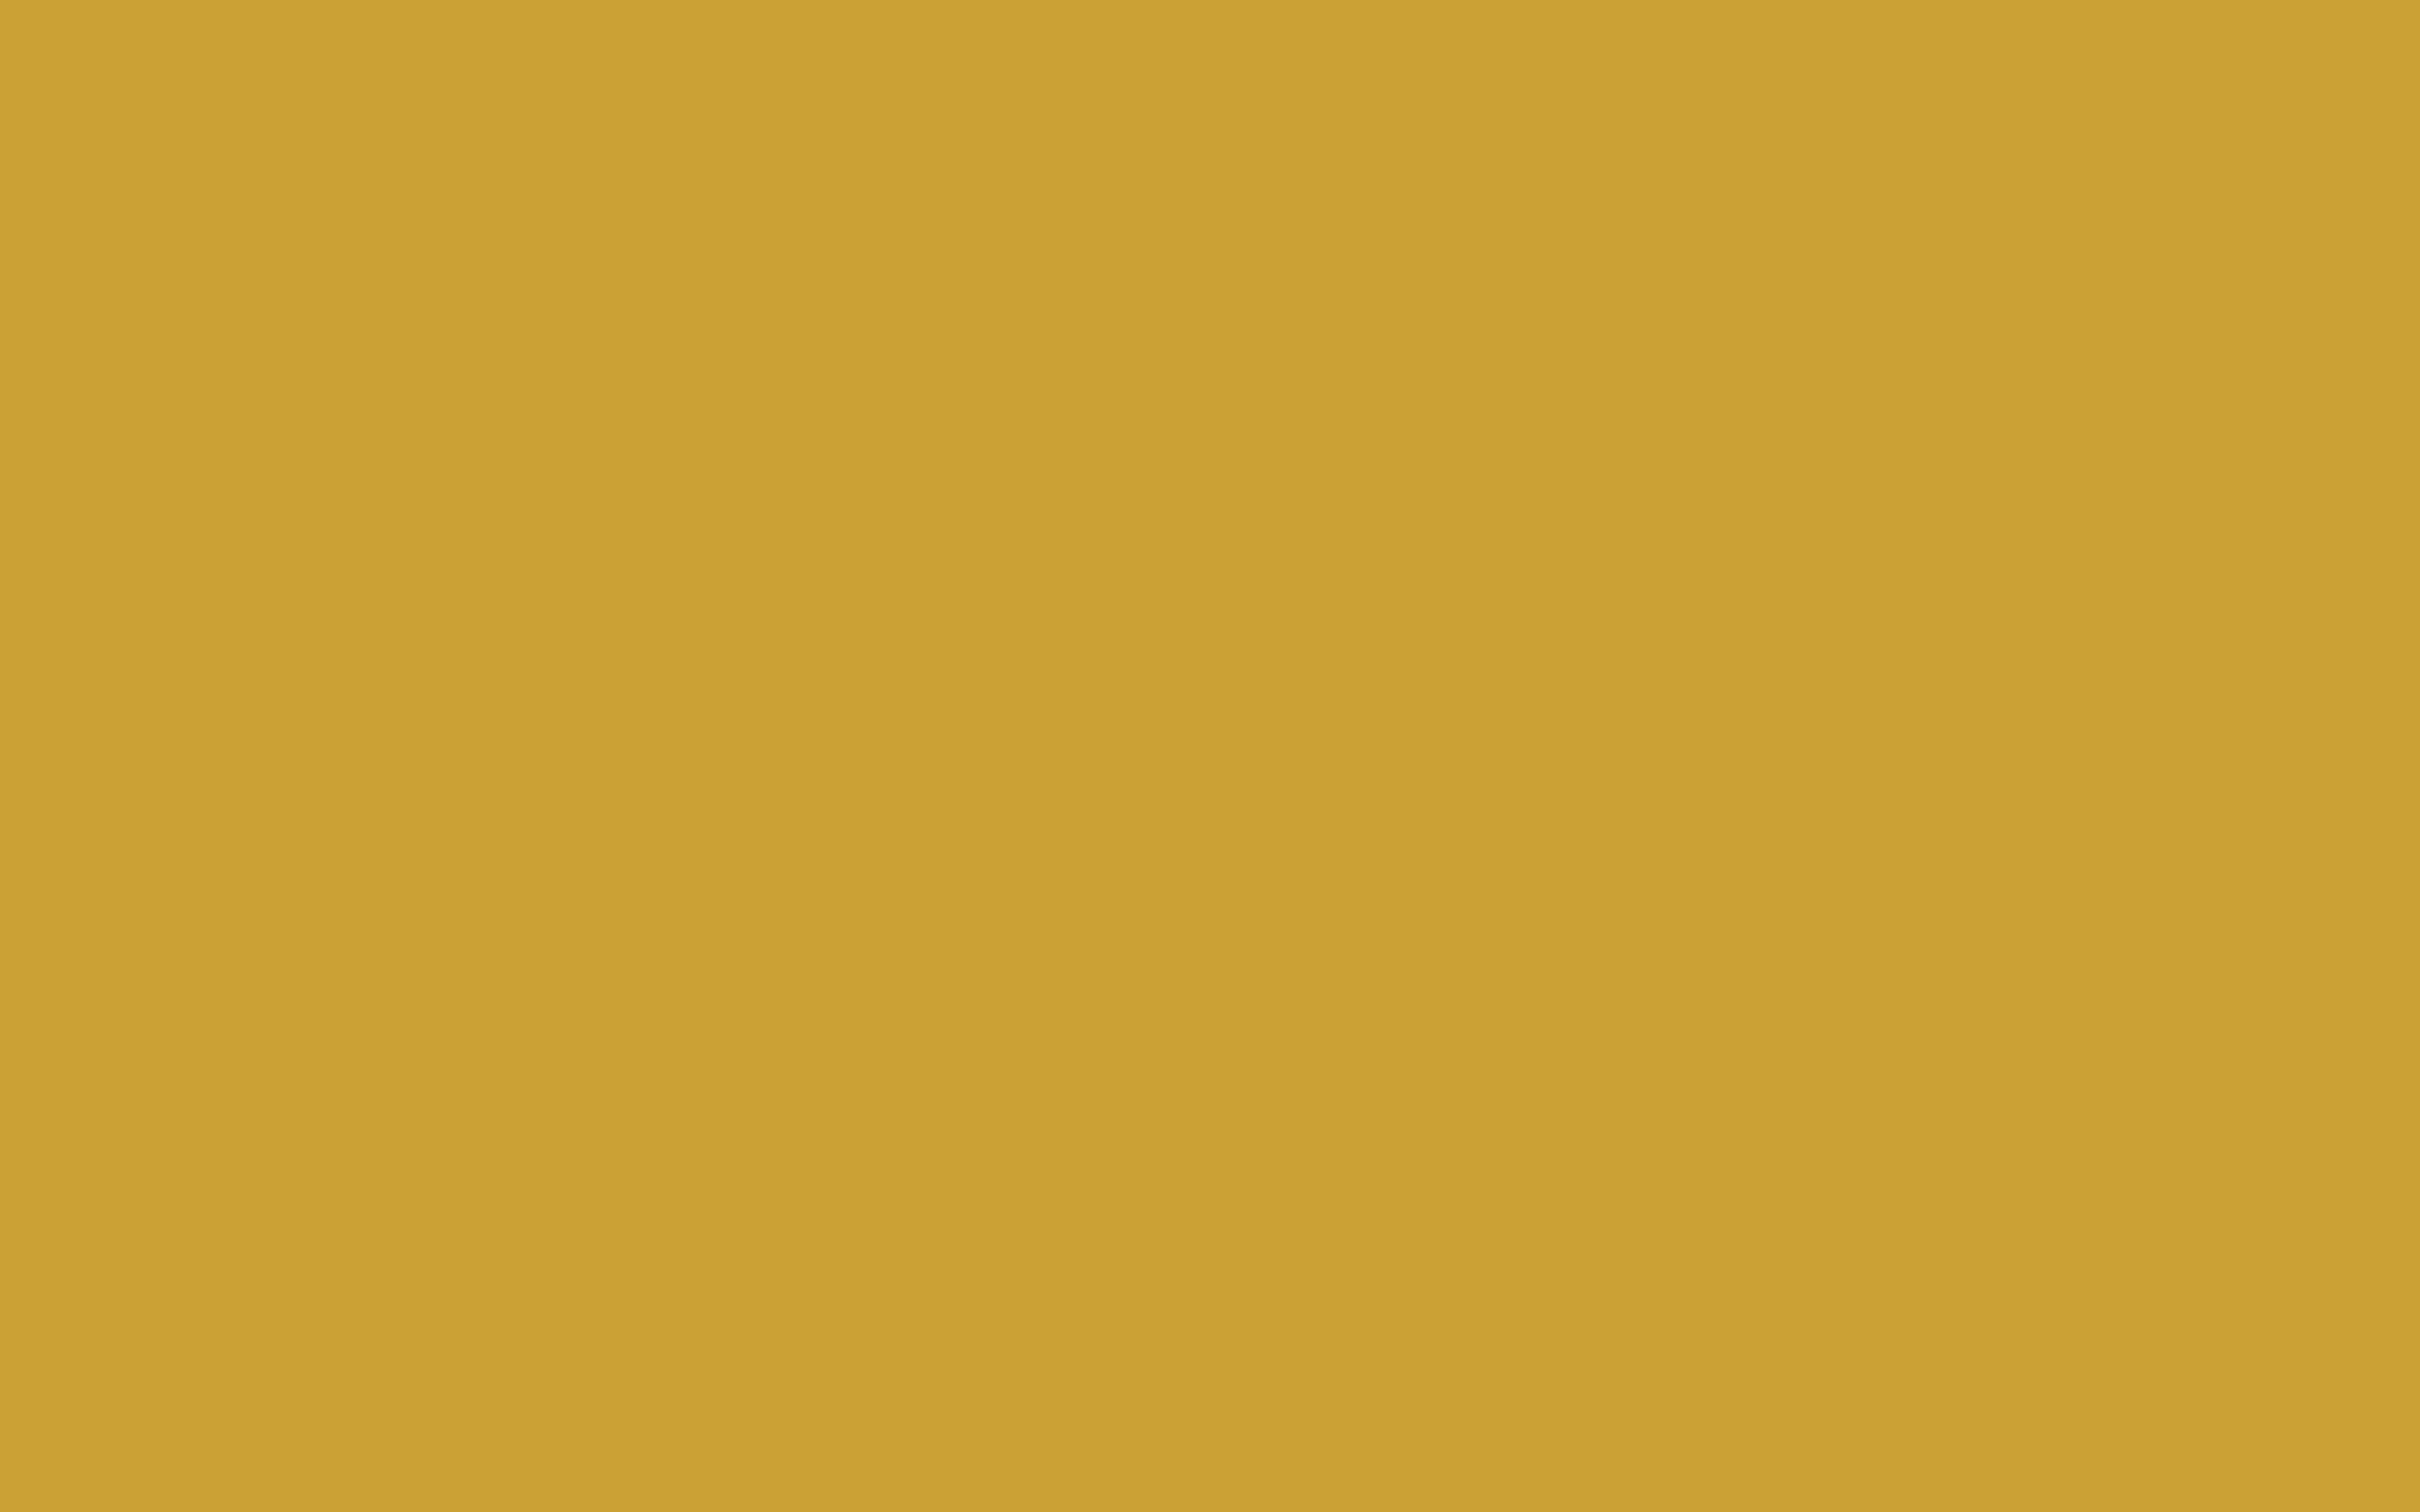 2560x1600 Satin Sheen Gold Solid Color Background